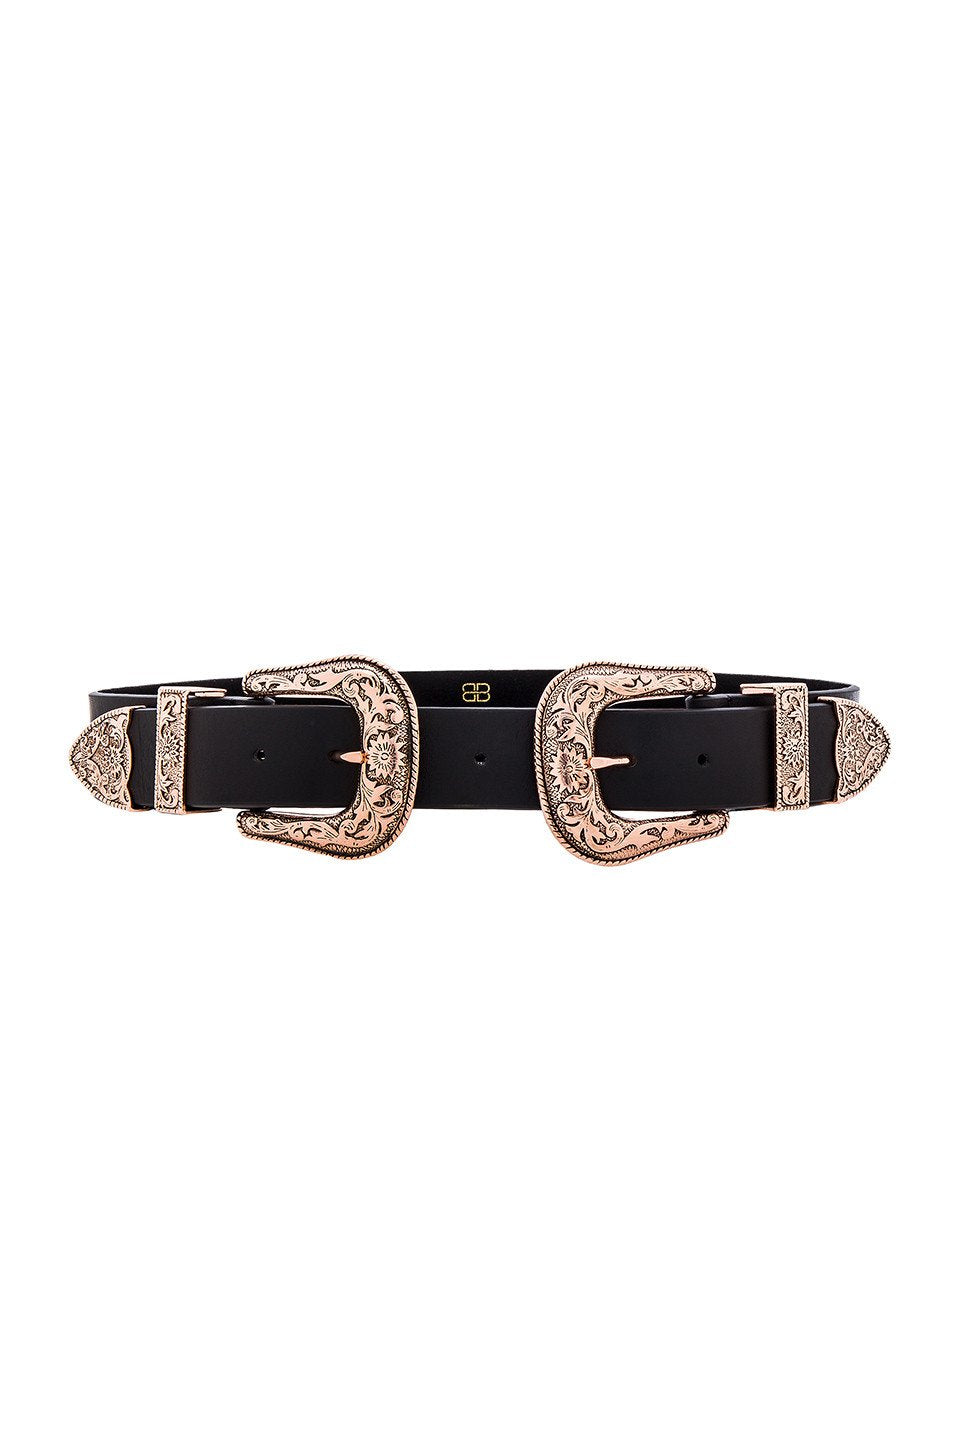 Bri Bri Belt - Kustom Label - 1